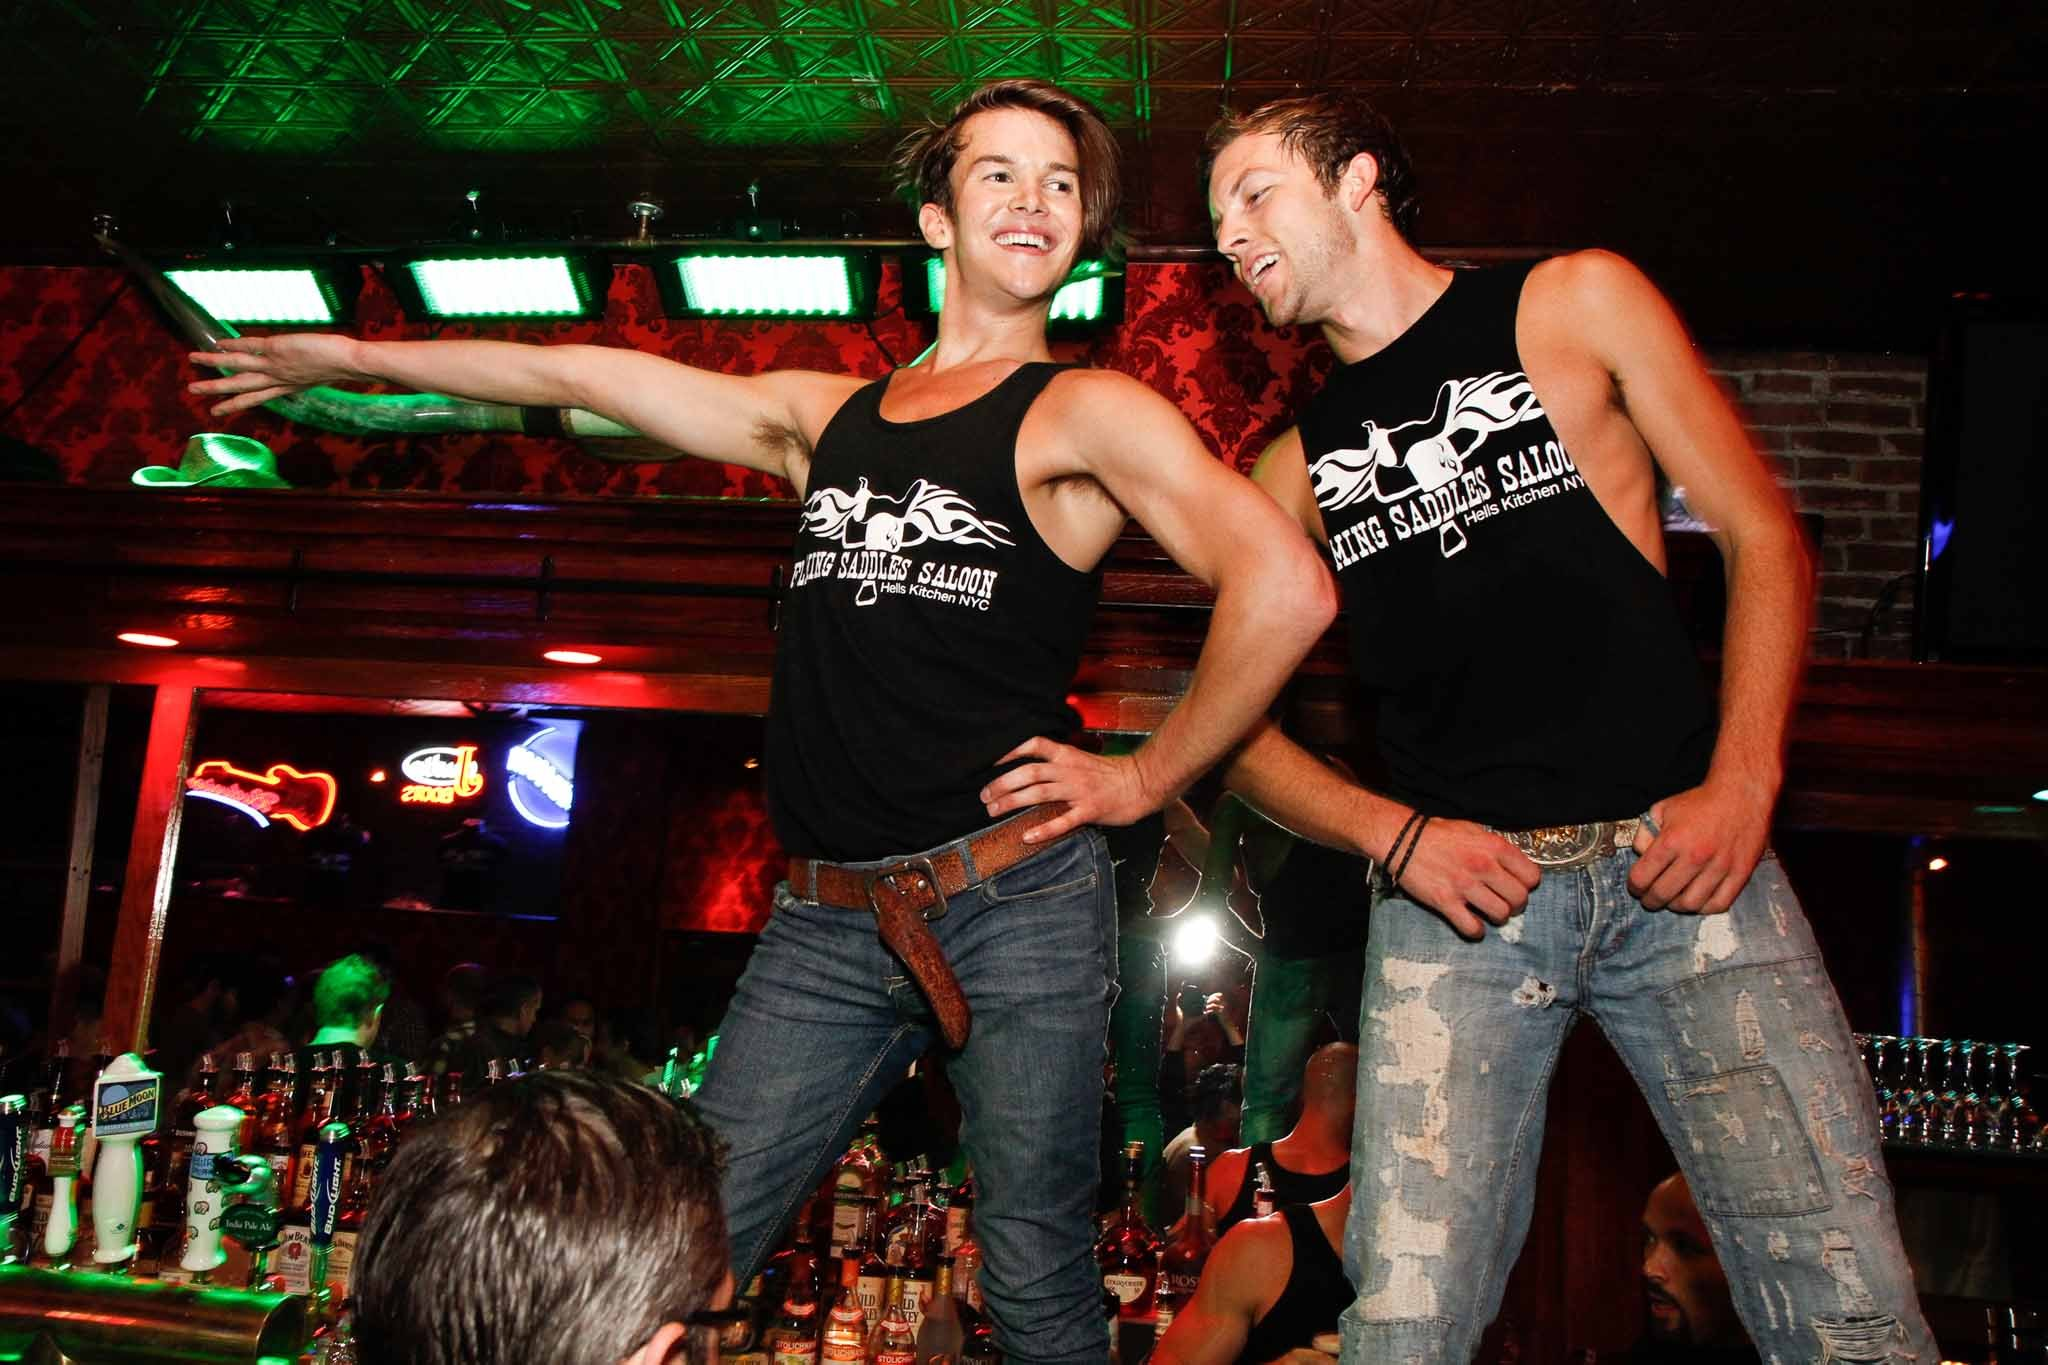 The best gay bars in New York City